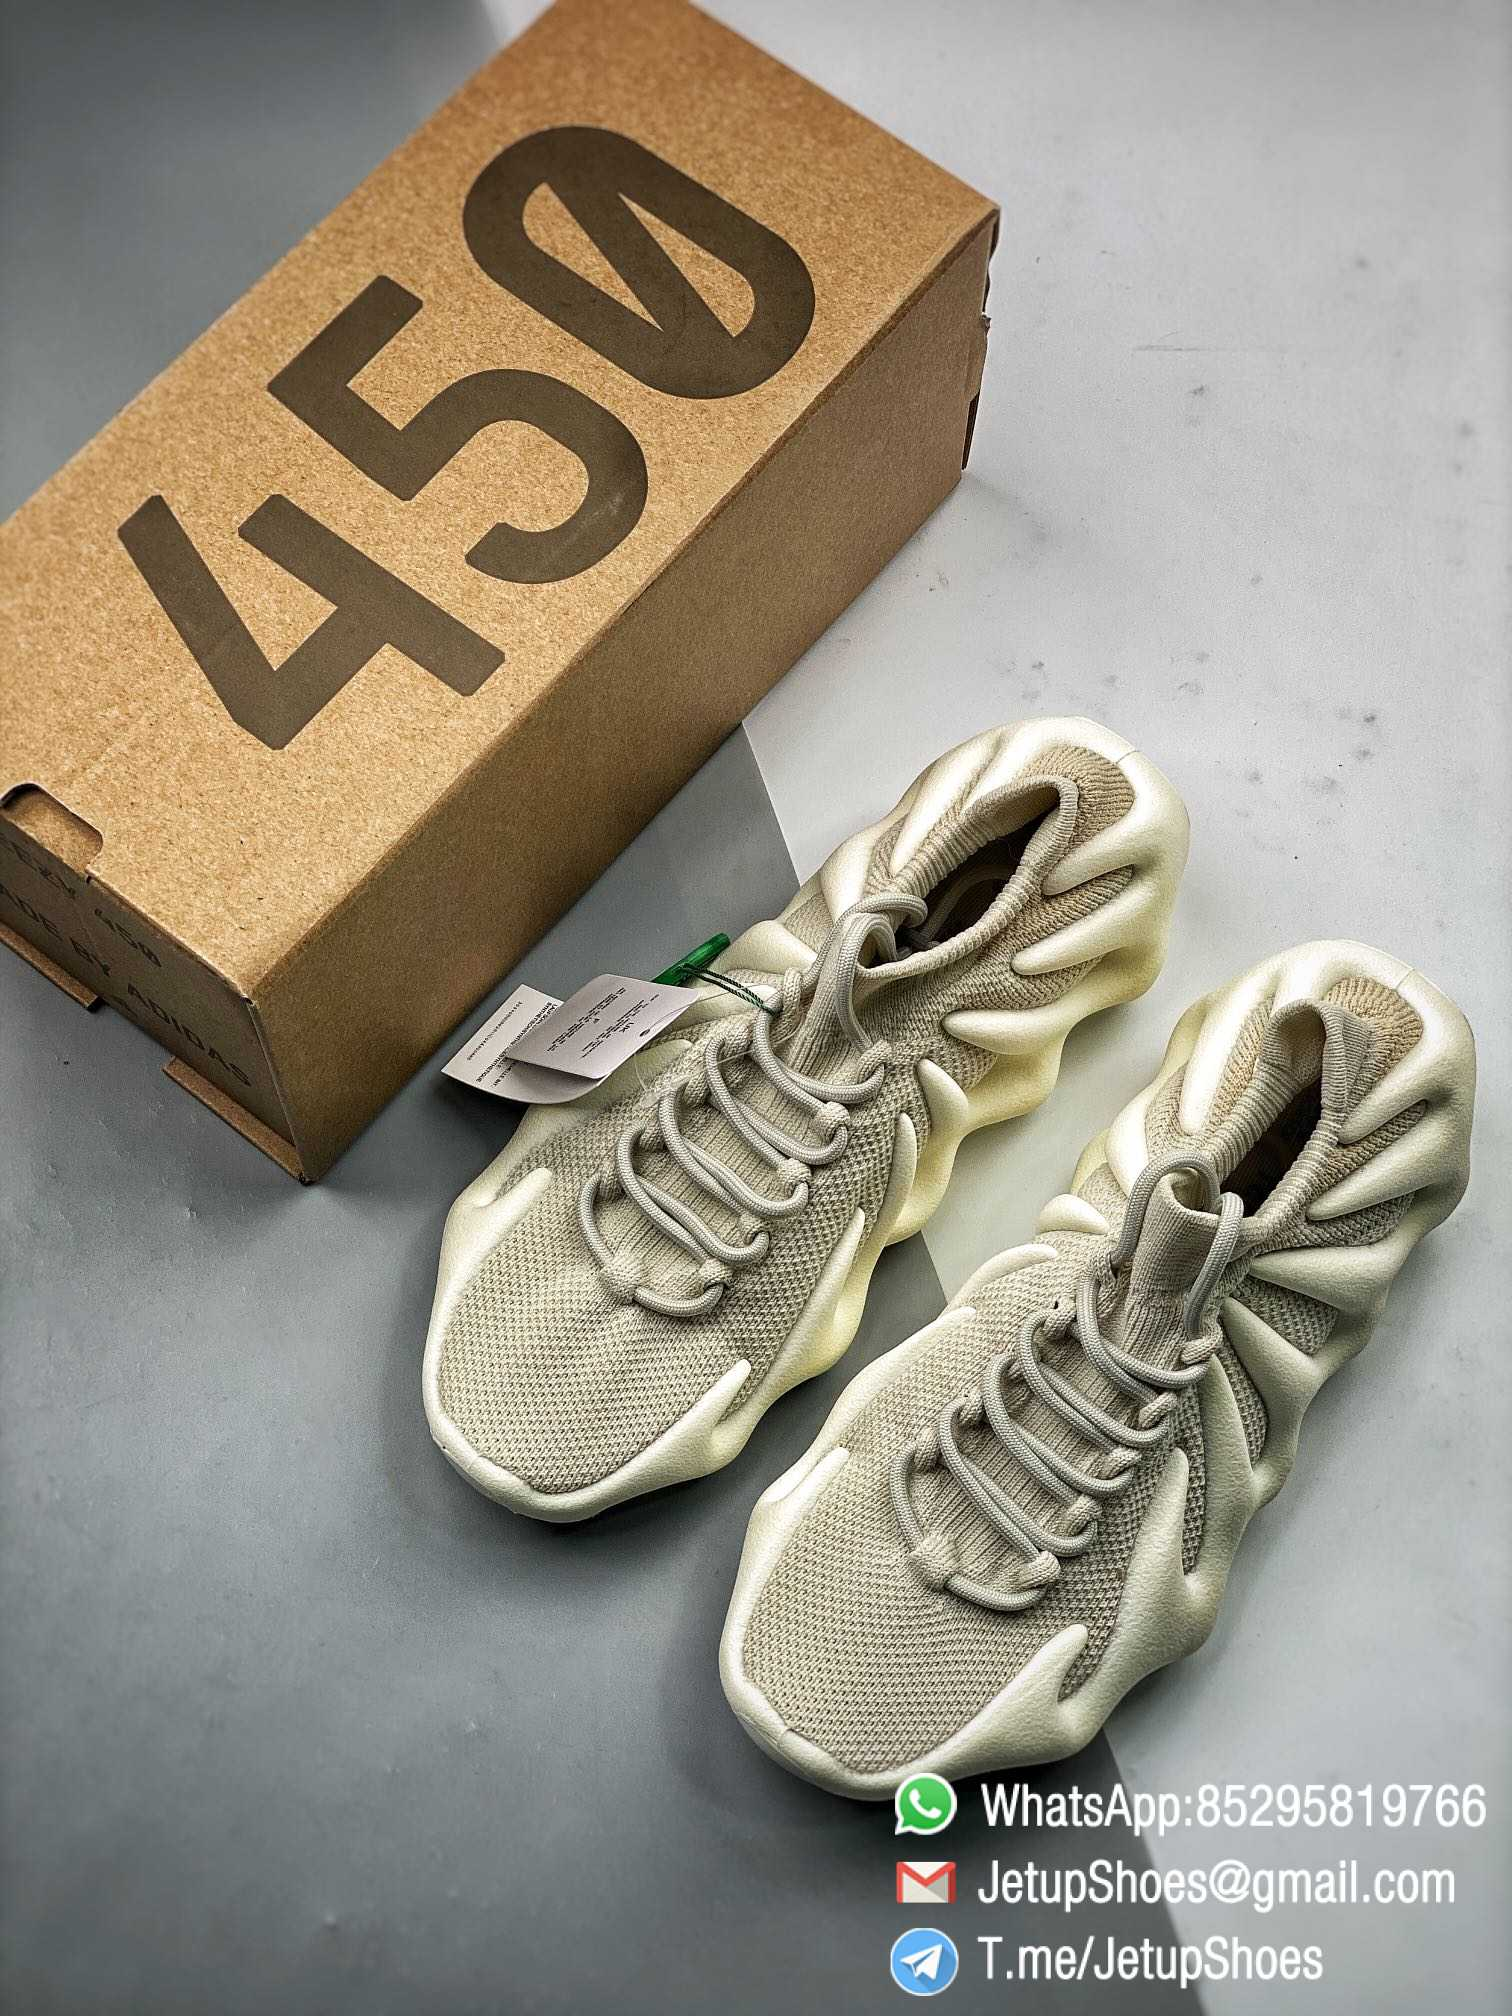 Best Replica adidas Yeezy 450 Cloud White Sneakers S2 Pure RepSneakers Top Quality Snkrs 09